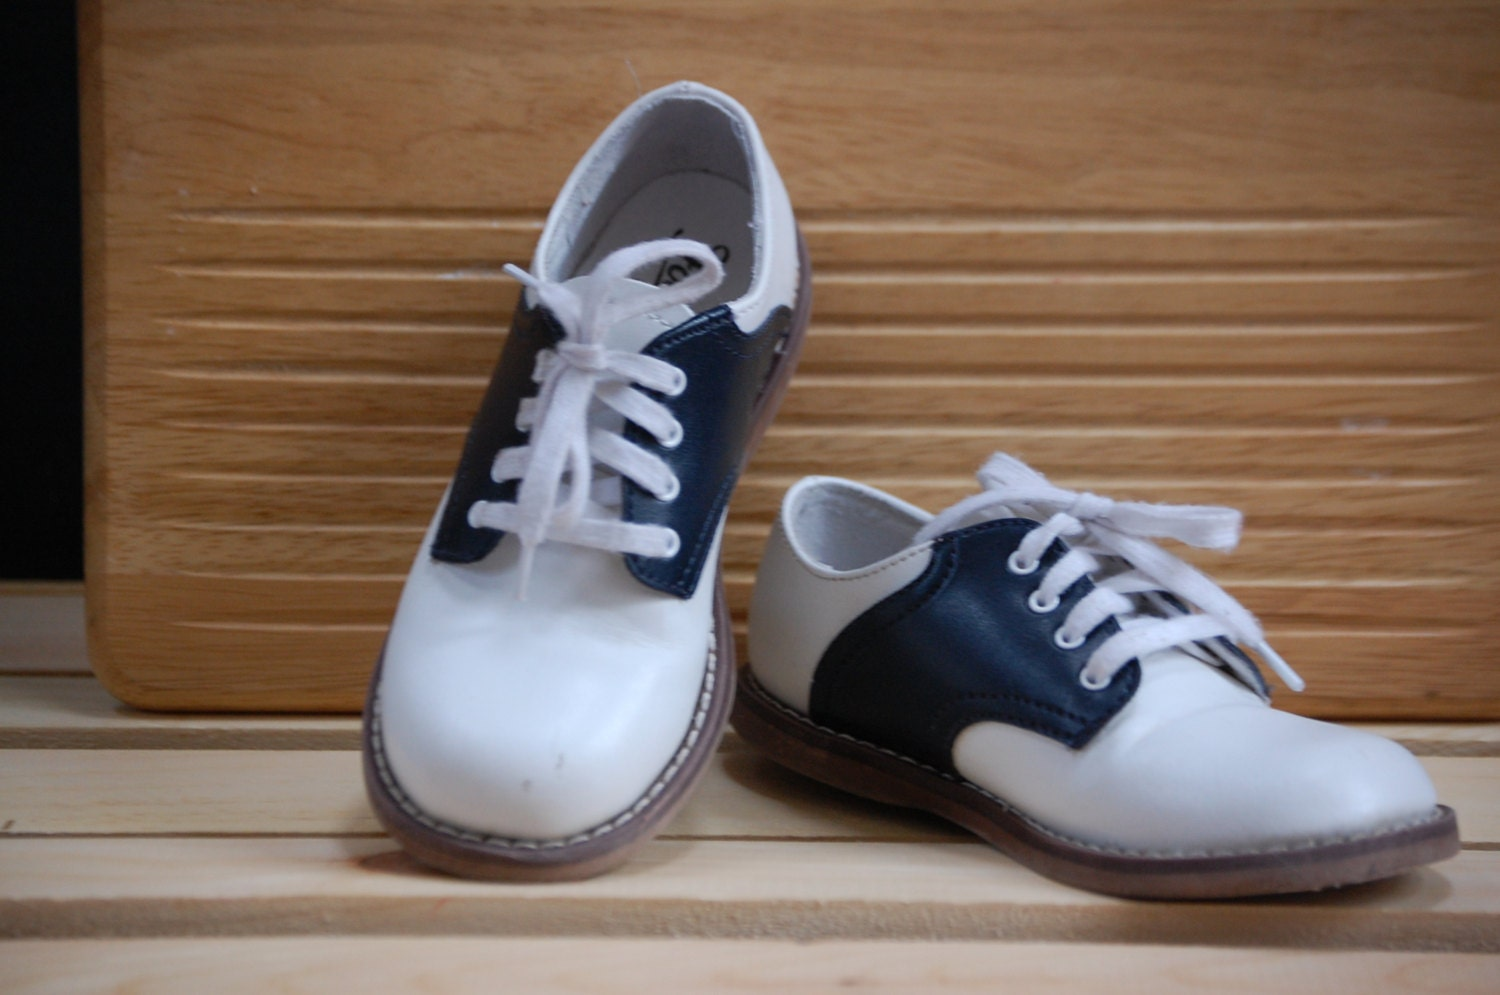 Black And White Saddle Shoes For Boys